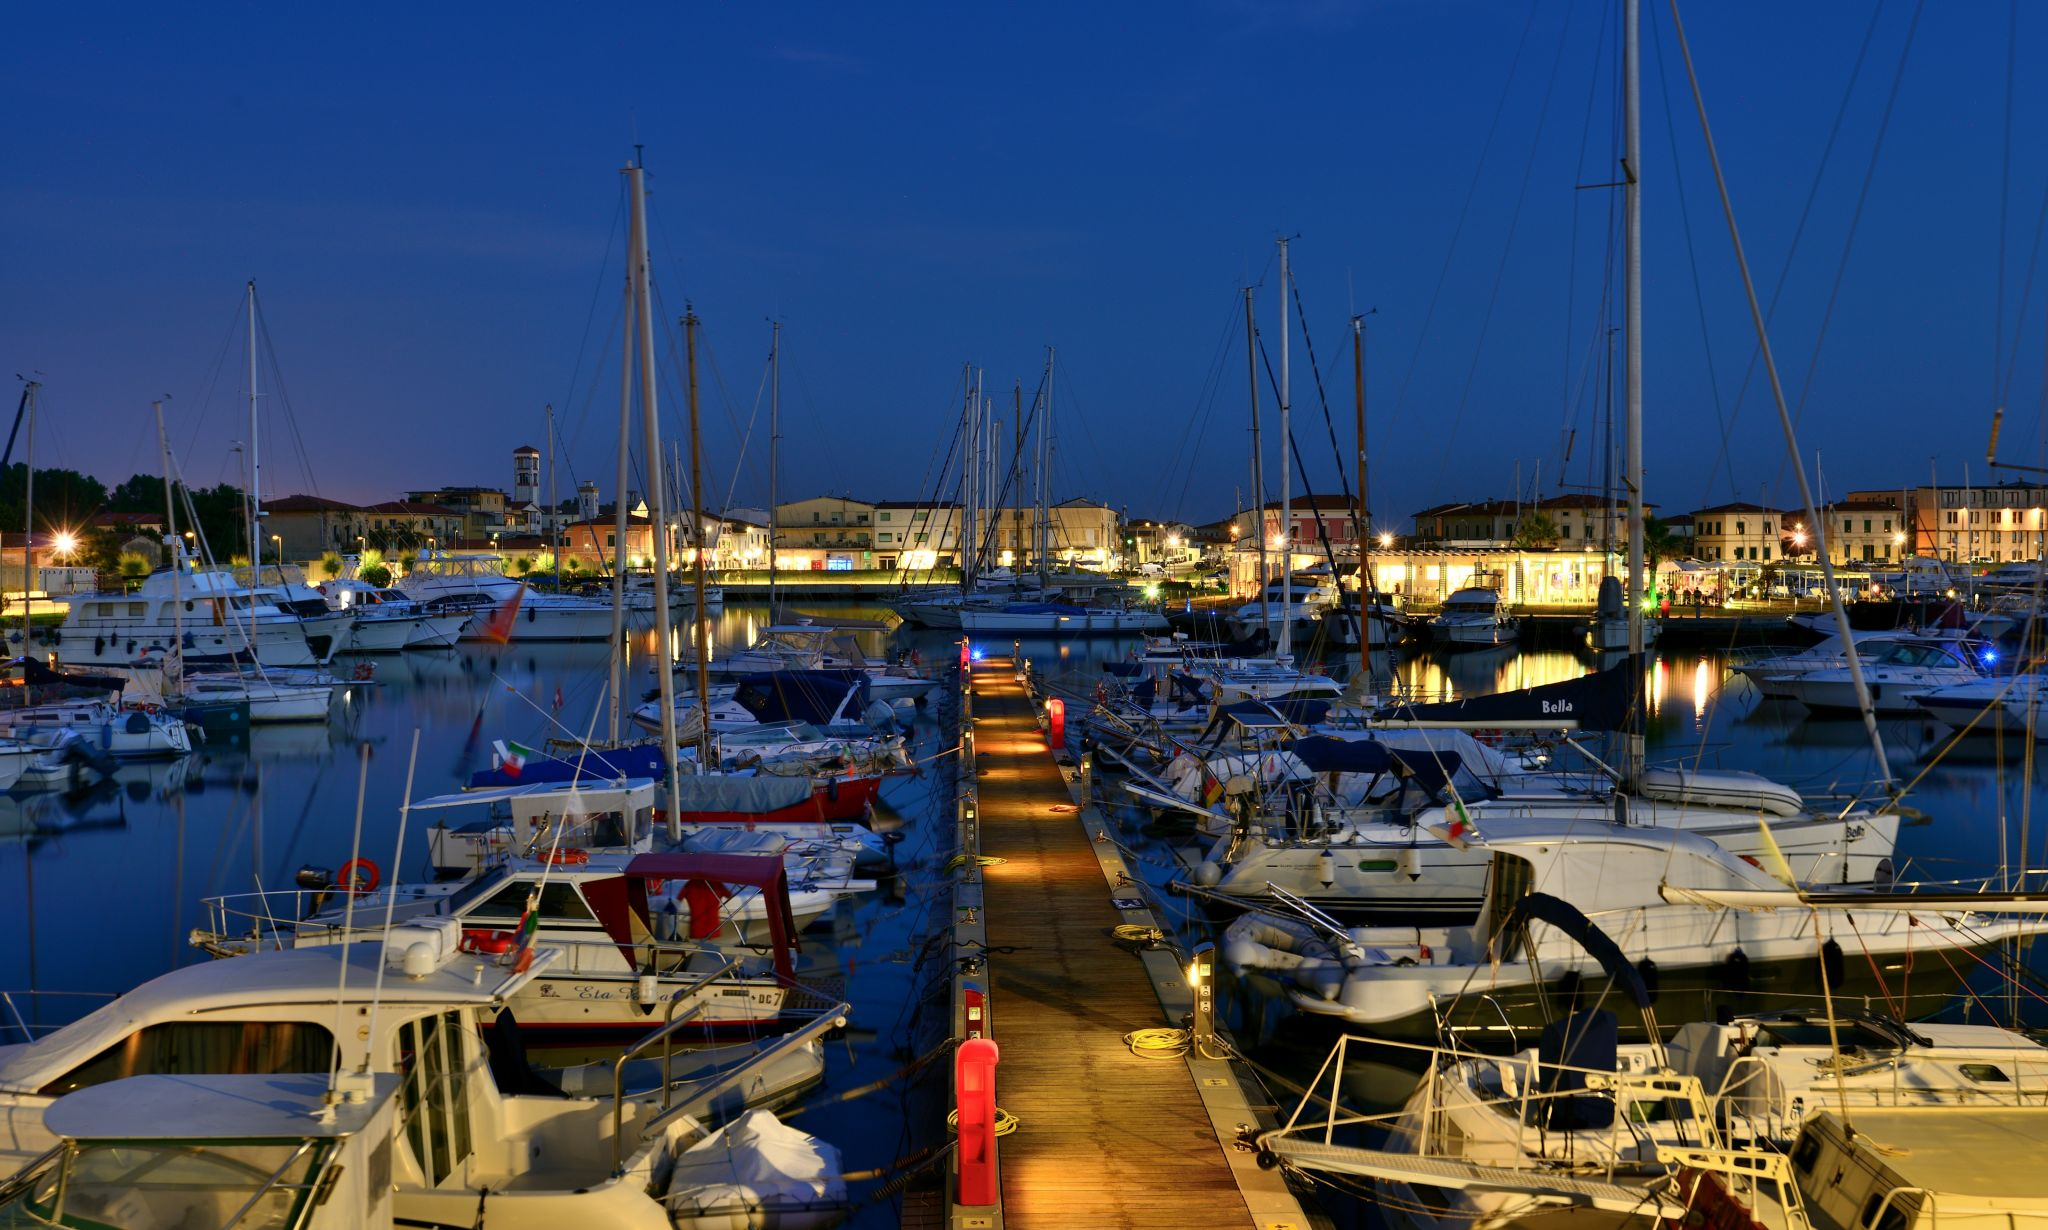 Marina di Pisa at night, Italy